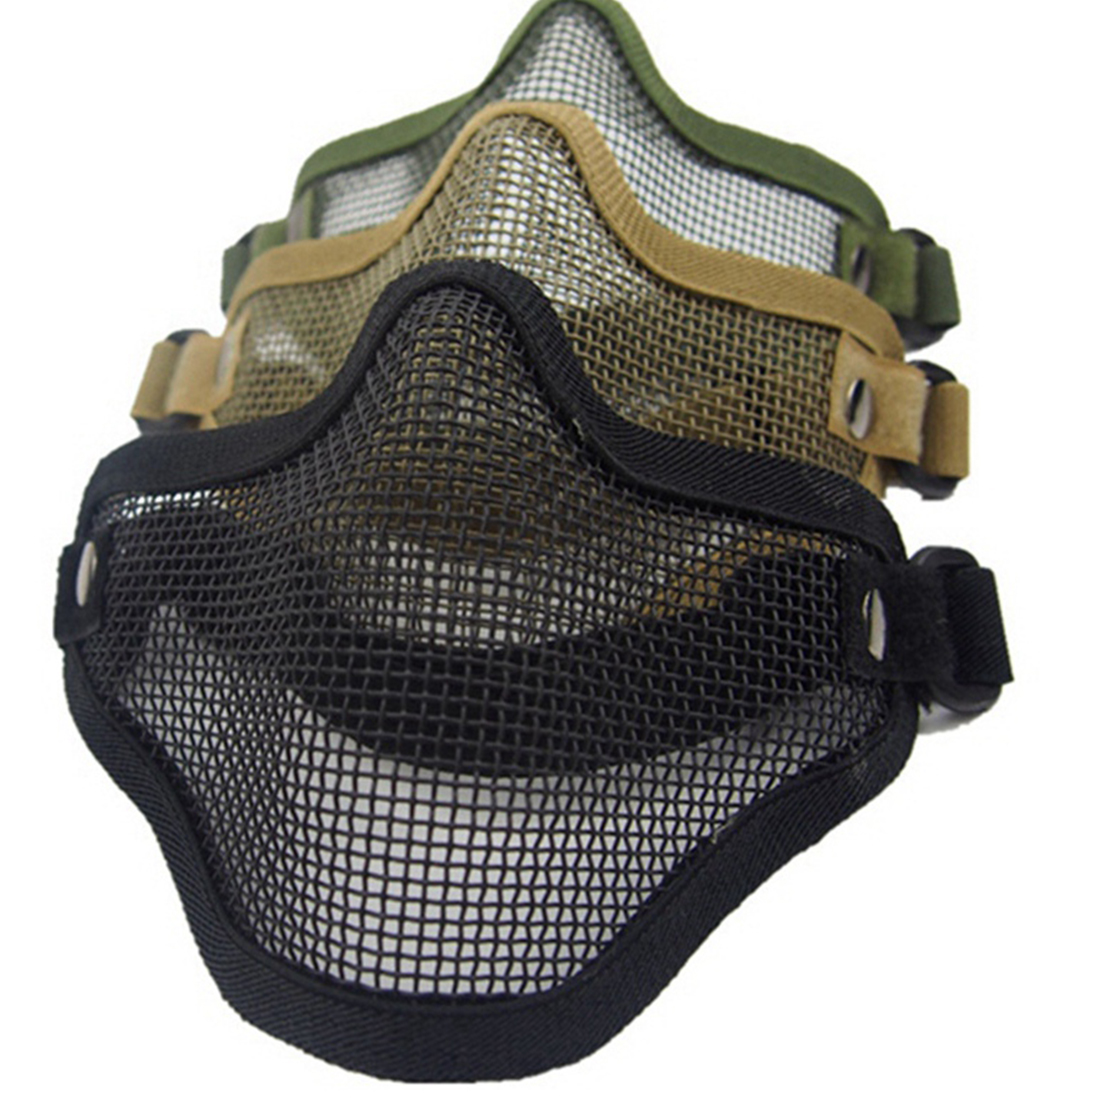 2020 New Half Lower Face Metal Steel Net Mesh Hunting Tactical Protective Airsoft Mask For Military Paintball Hunting Airsoft